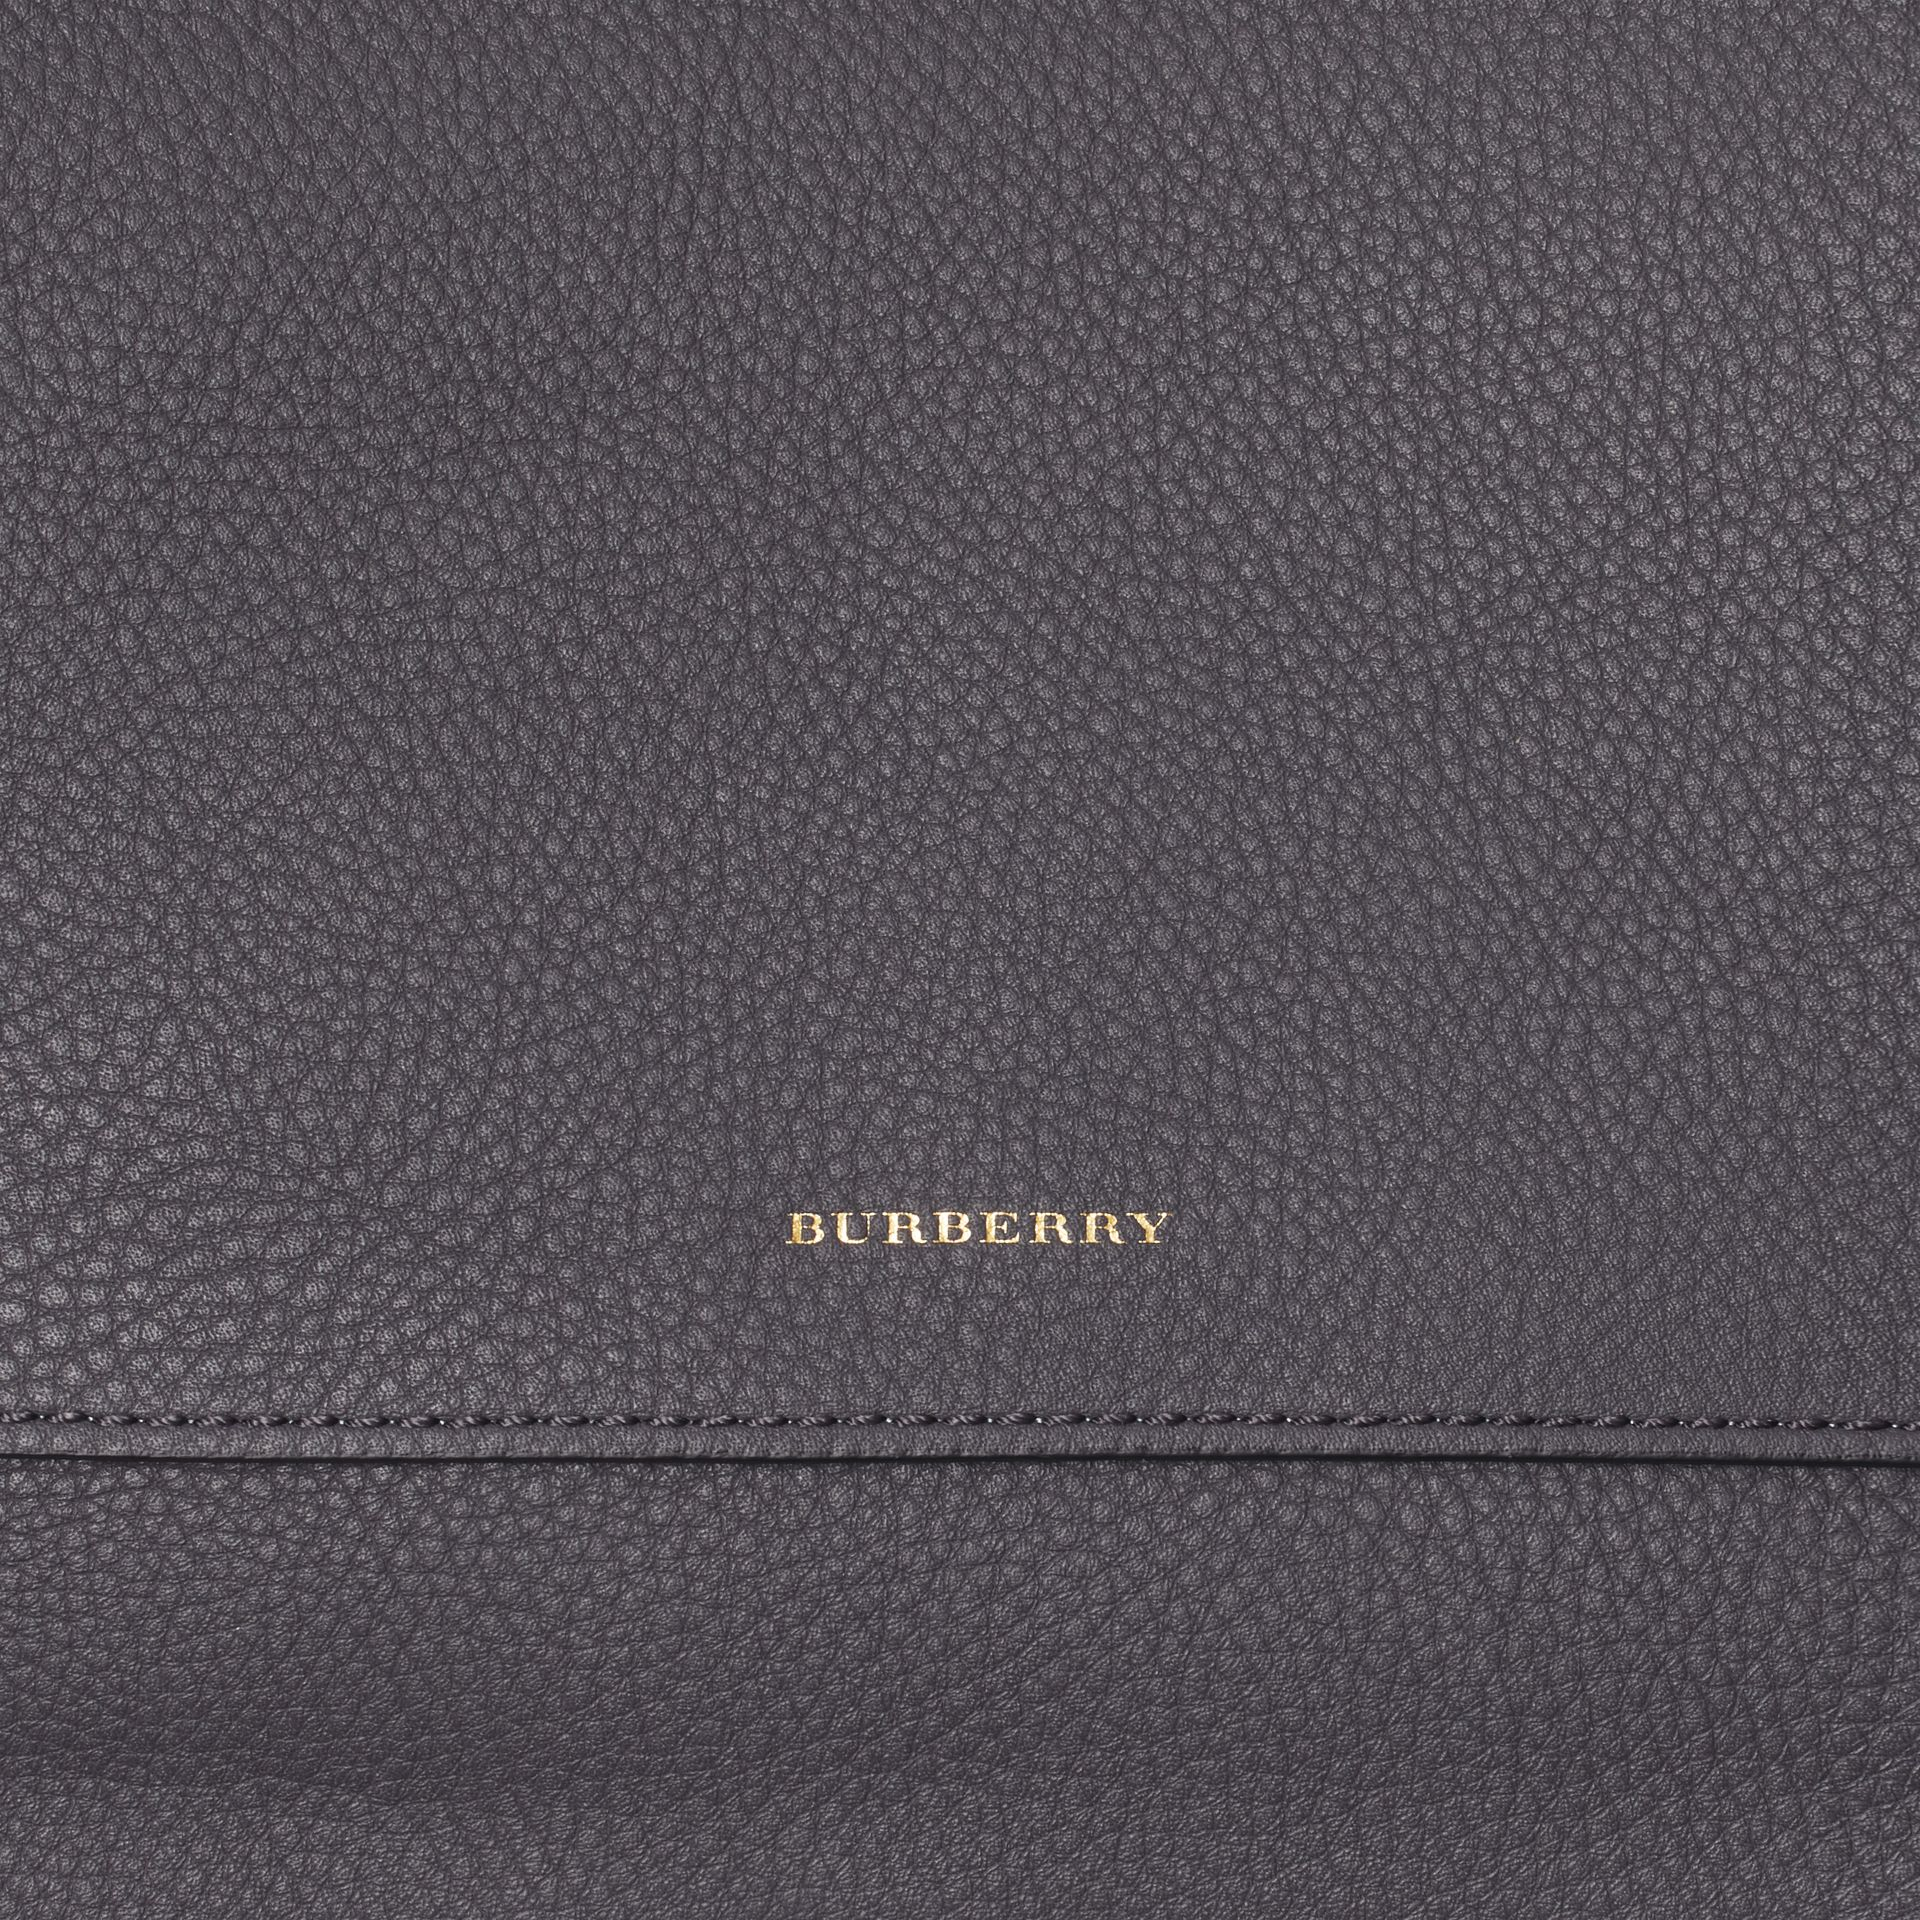 Leather Pouch with Detachable Strap in Charcoal Grey - Women | Burberry - gallery image 1